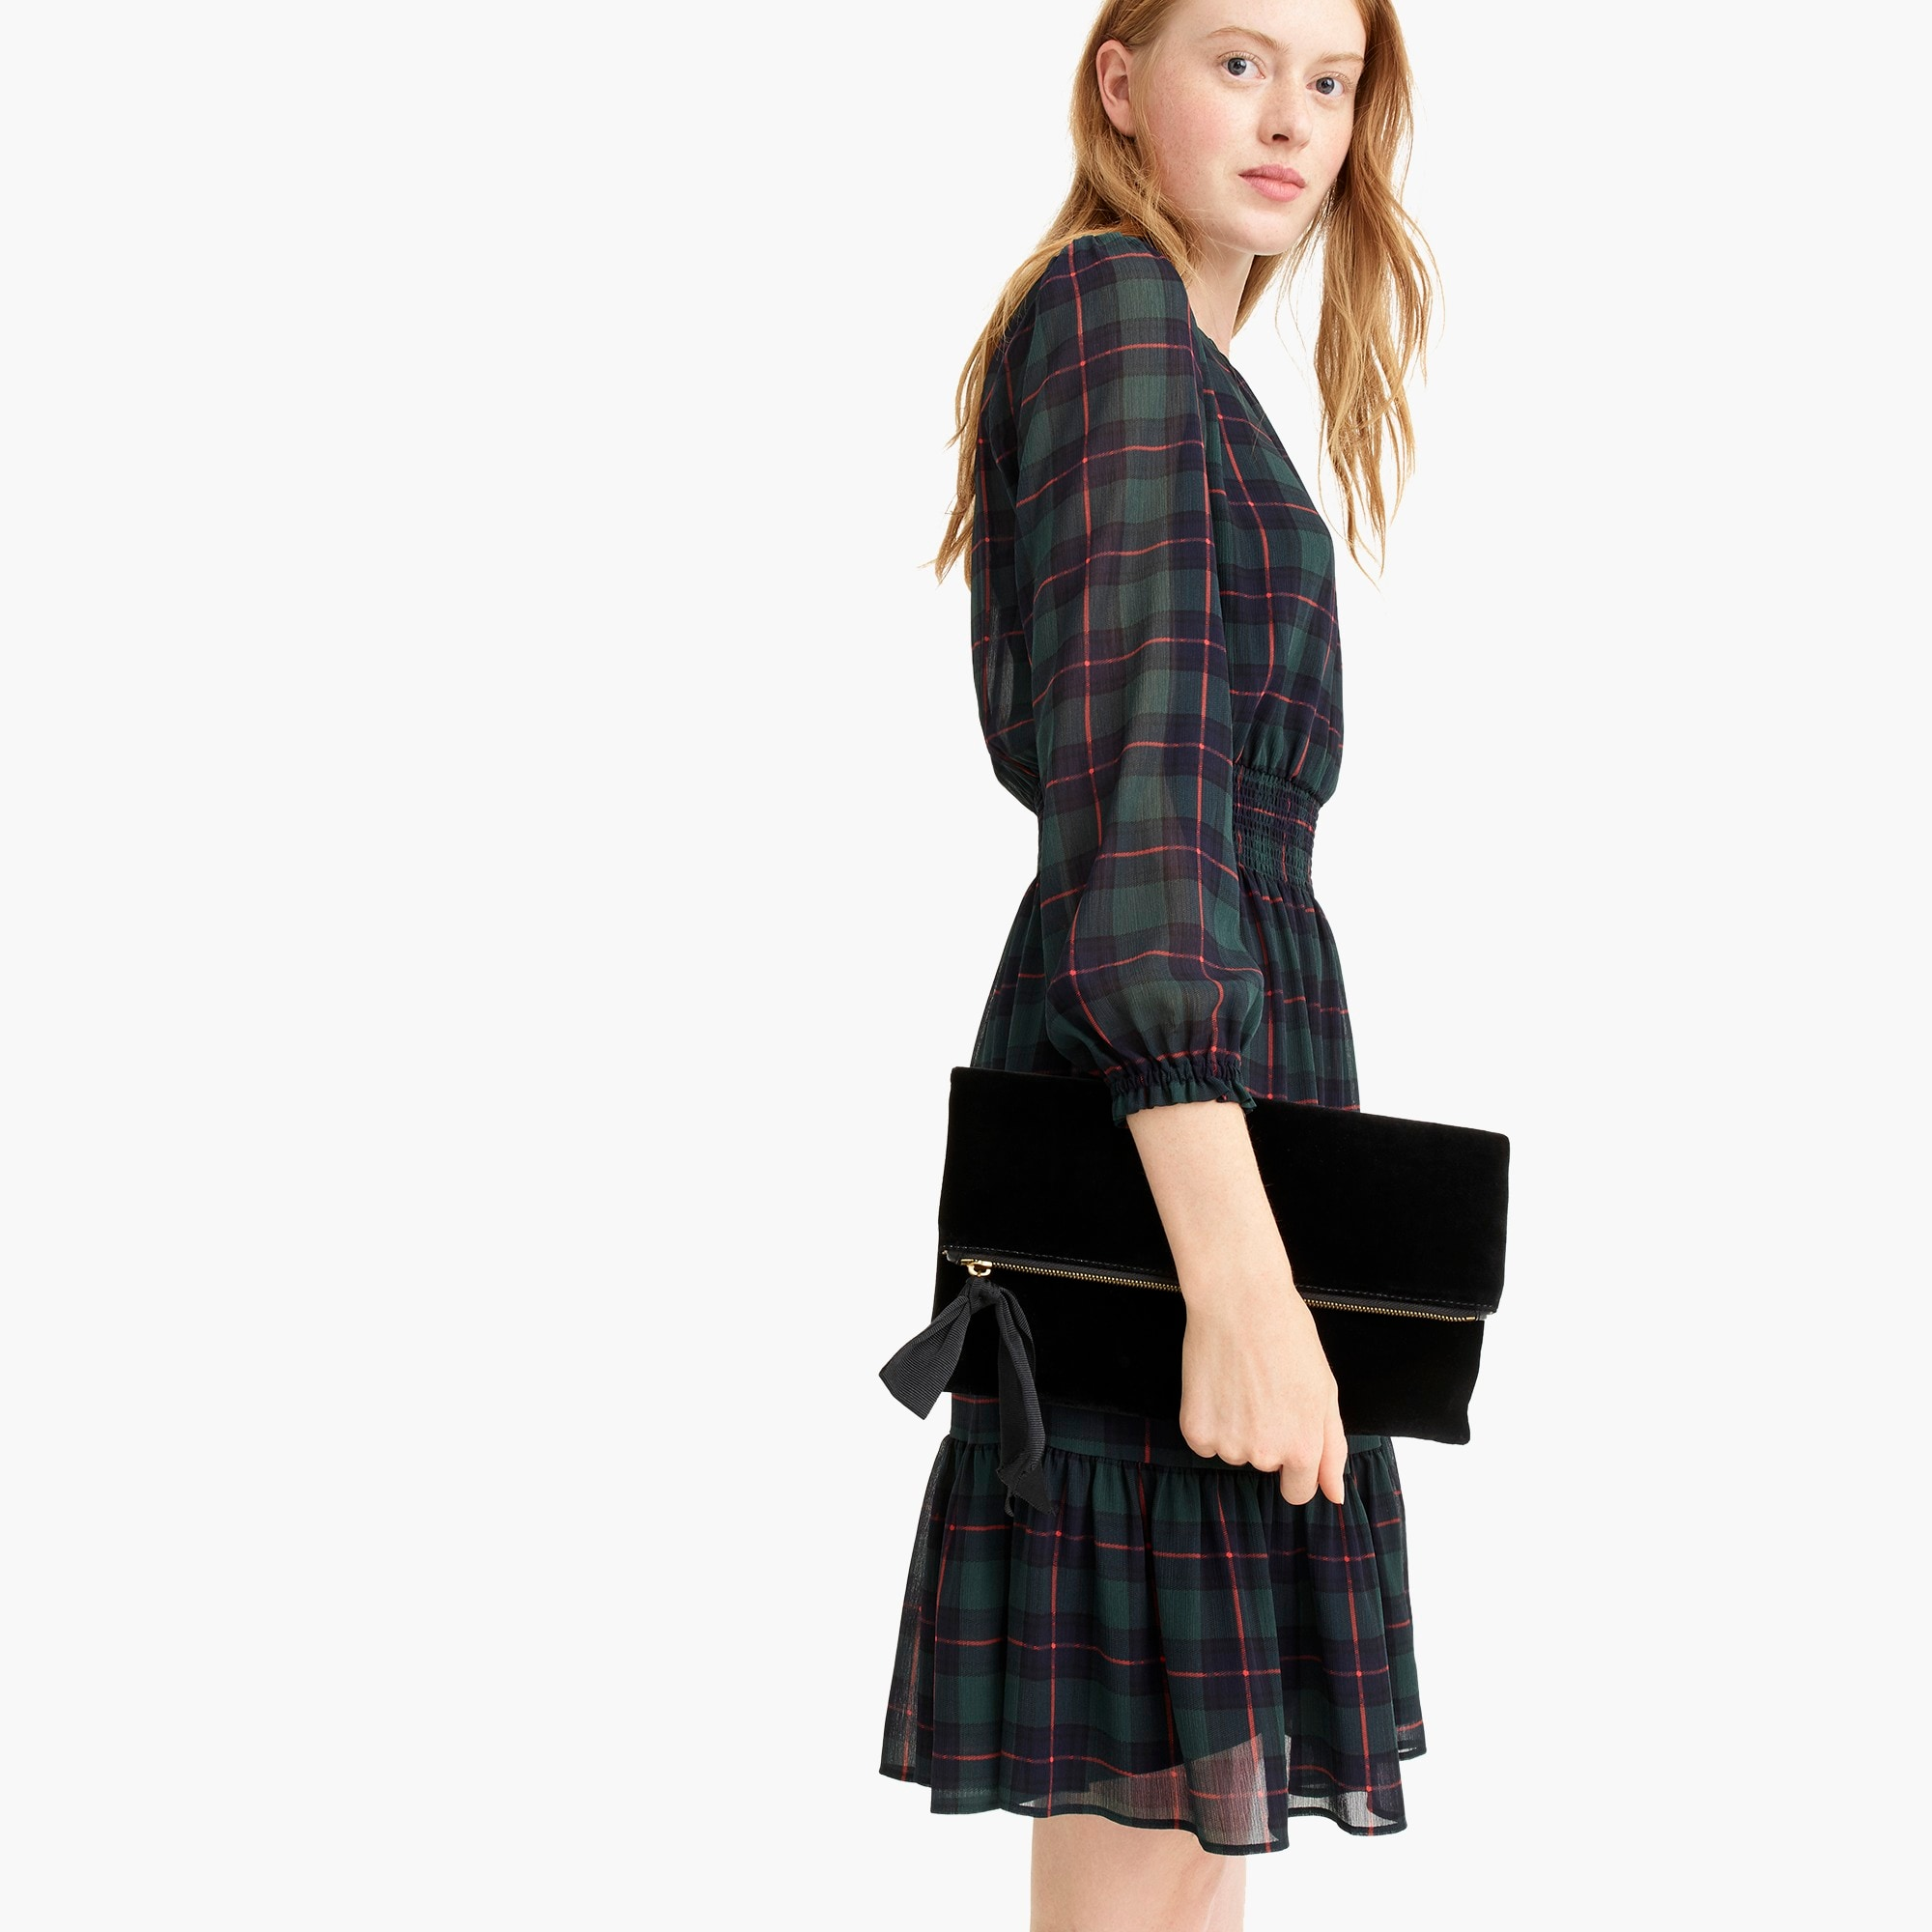 womens Cinched-waist dress in Black Watch plaid chiffon